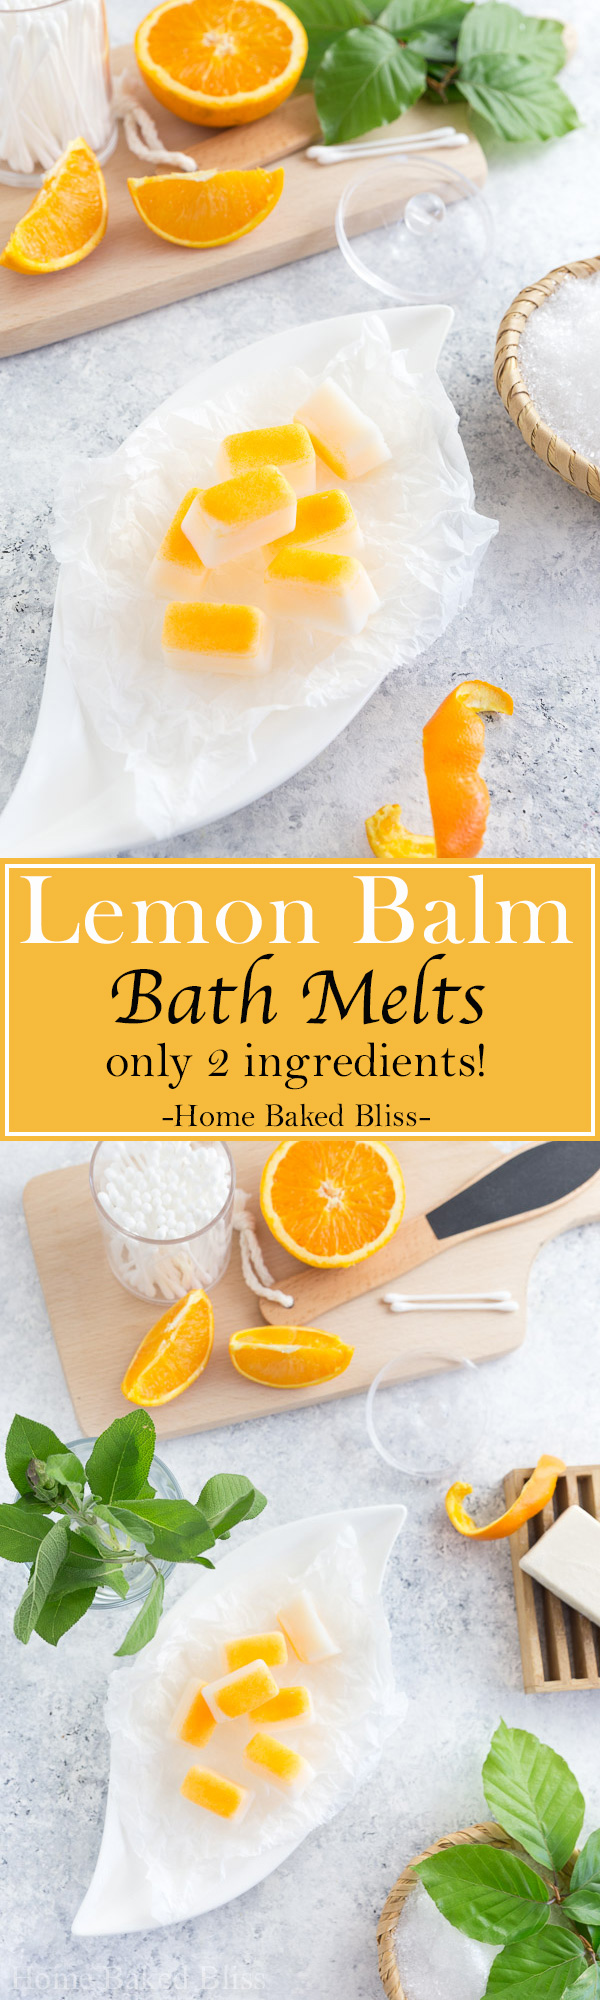 These colourful coconut bath melts infused with lemon balm bath oil are incredibly fragrant and relaxing. An instant bath upgrade!